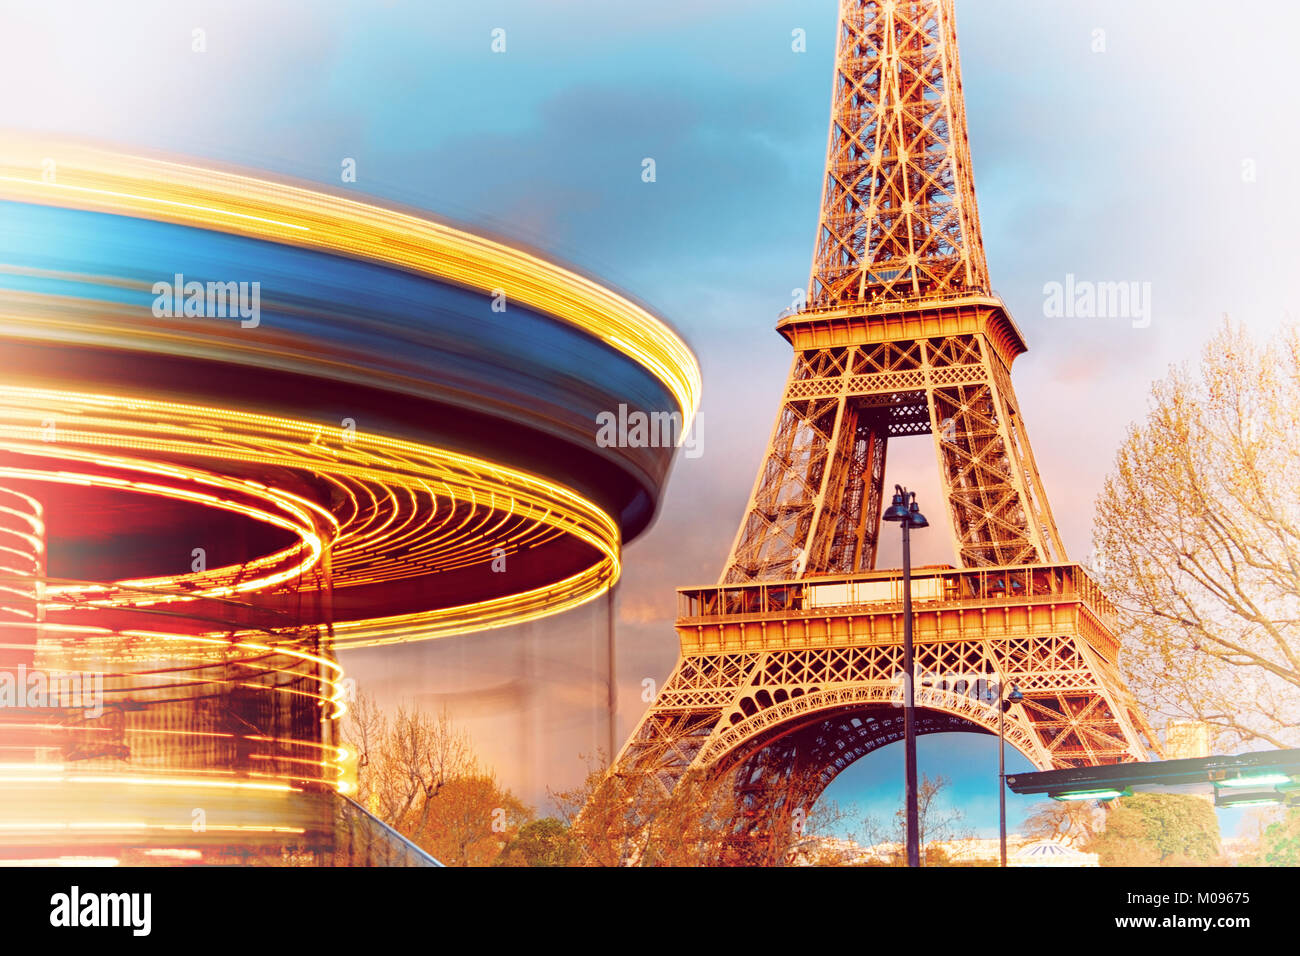 Illuminated vintage carousel rotates  in front of to Eiffel Tower, Paris, on a sunset. The metal tower reflects - Stock Image